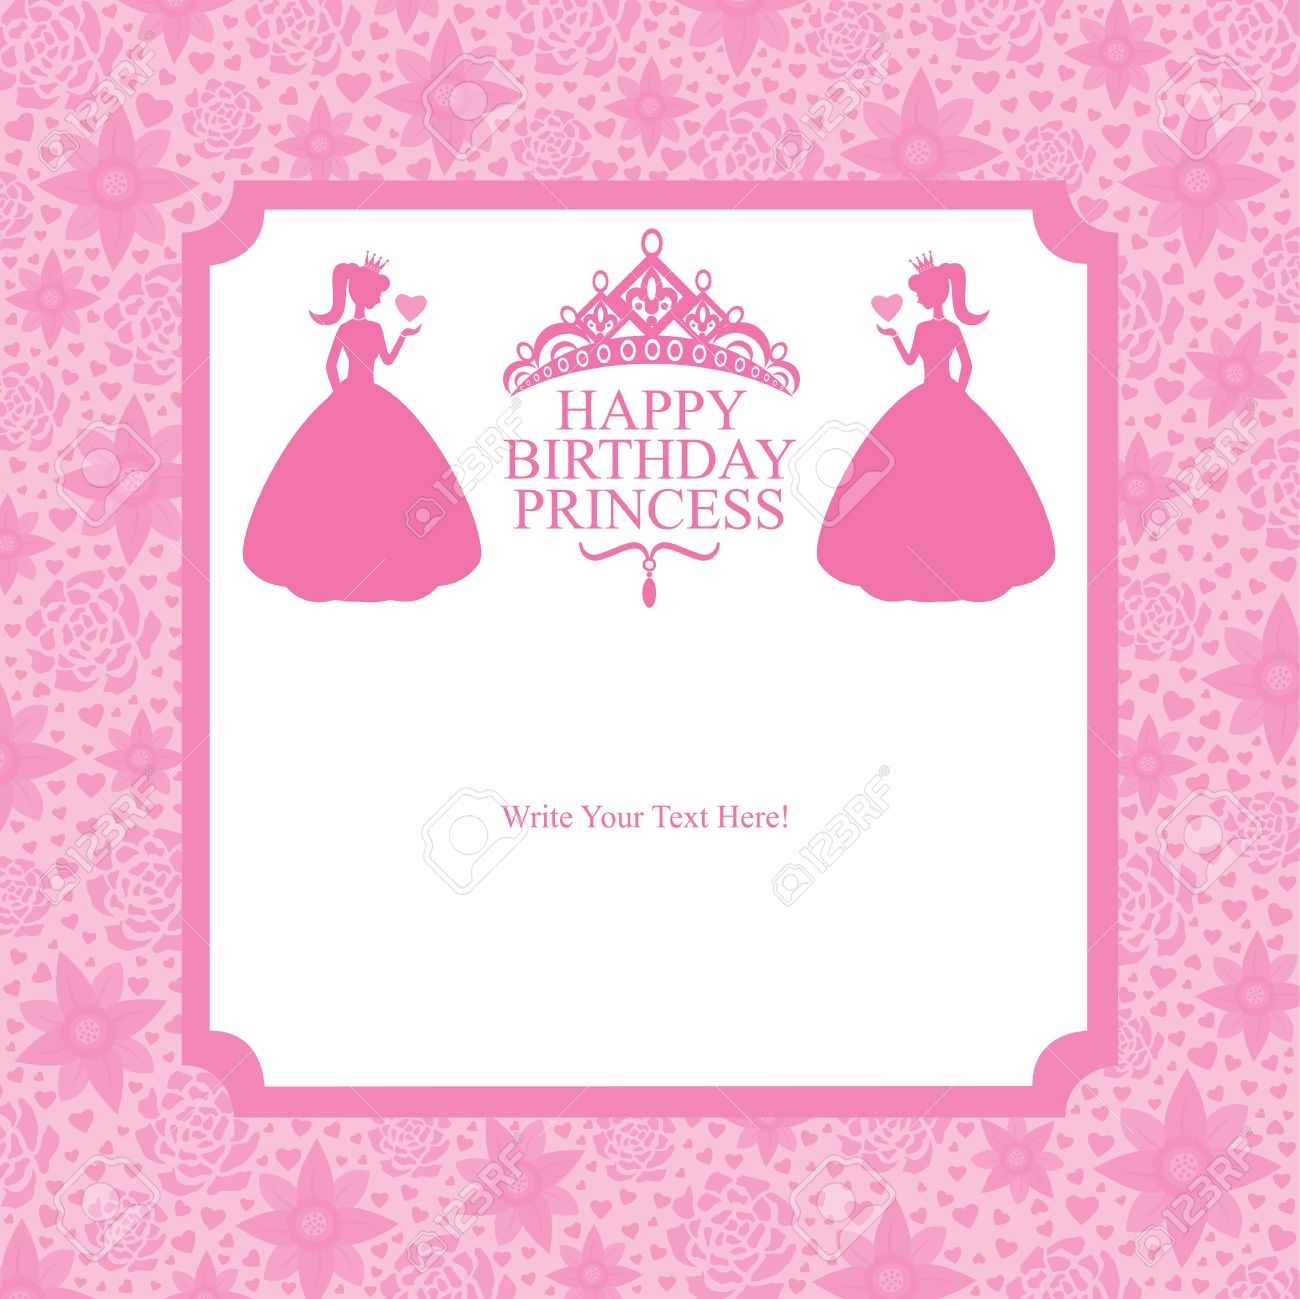 birthday princess card design royalty free cliparts, vectors, and, Birthday card